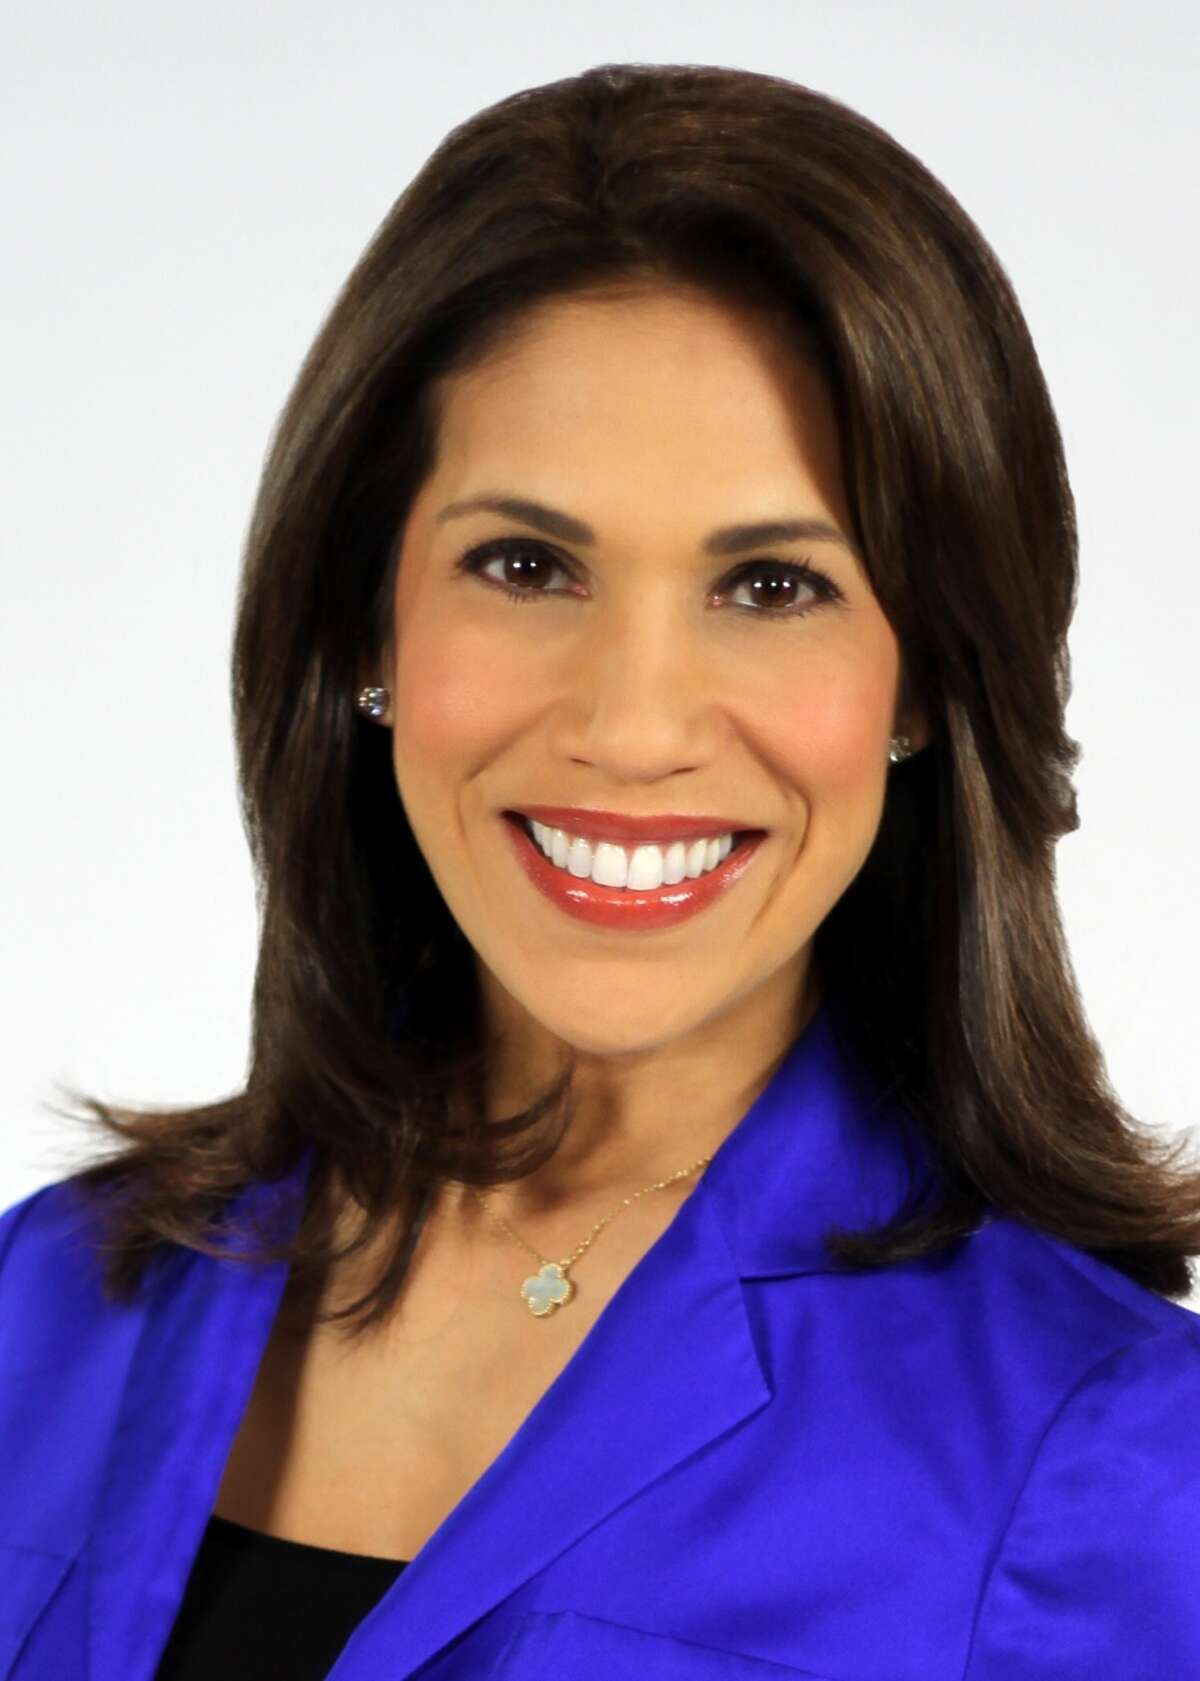 Long-time morning anchor, Rachel McNeill will be leaving KPRC at the end of the year.